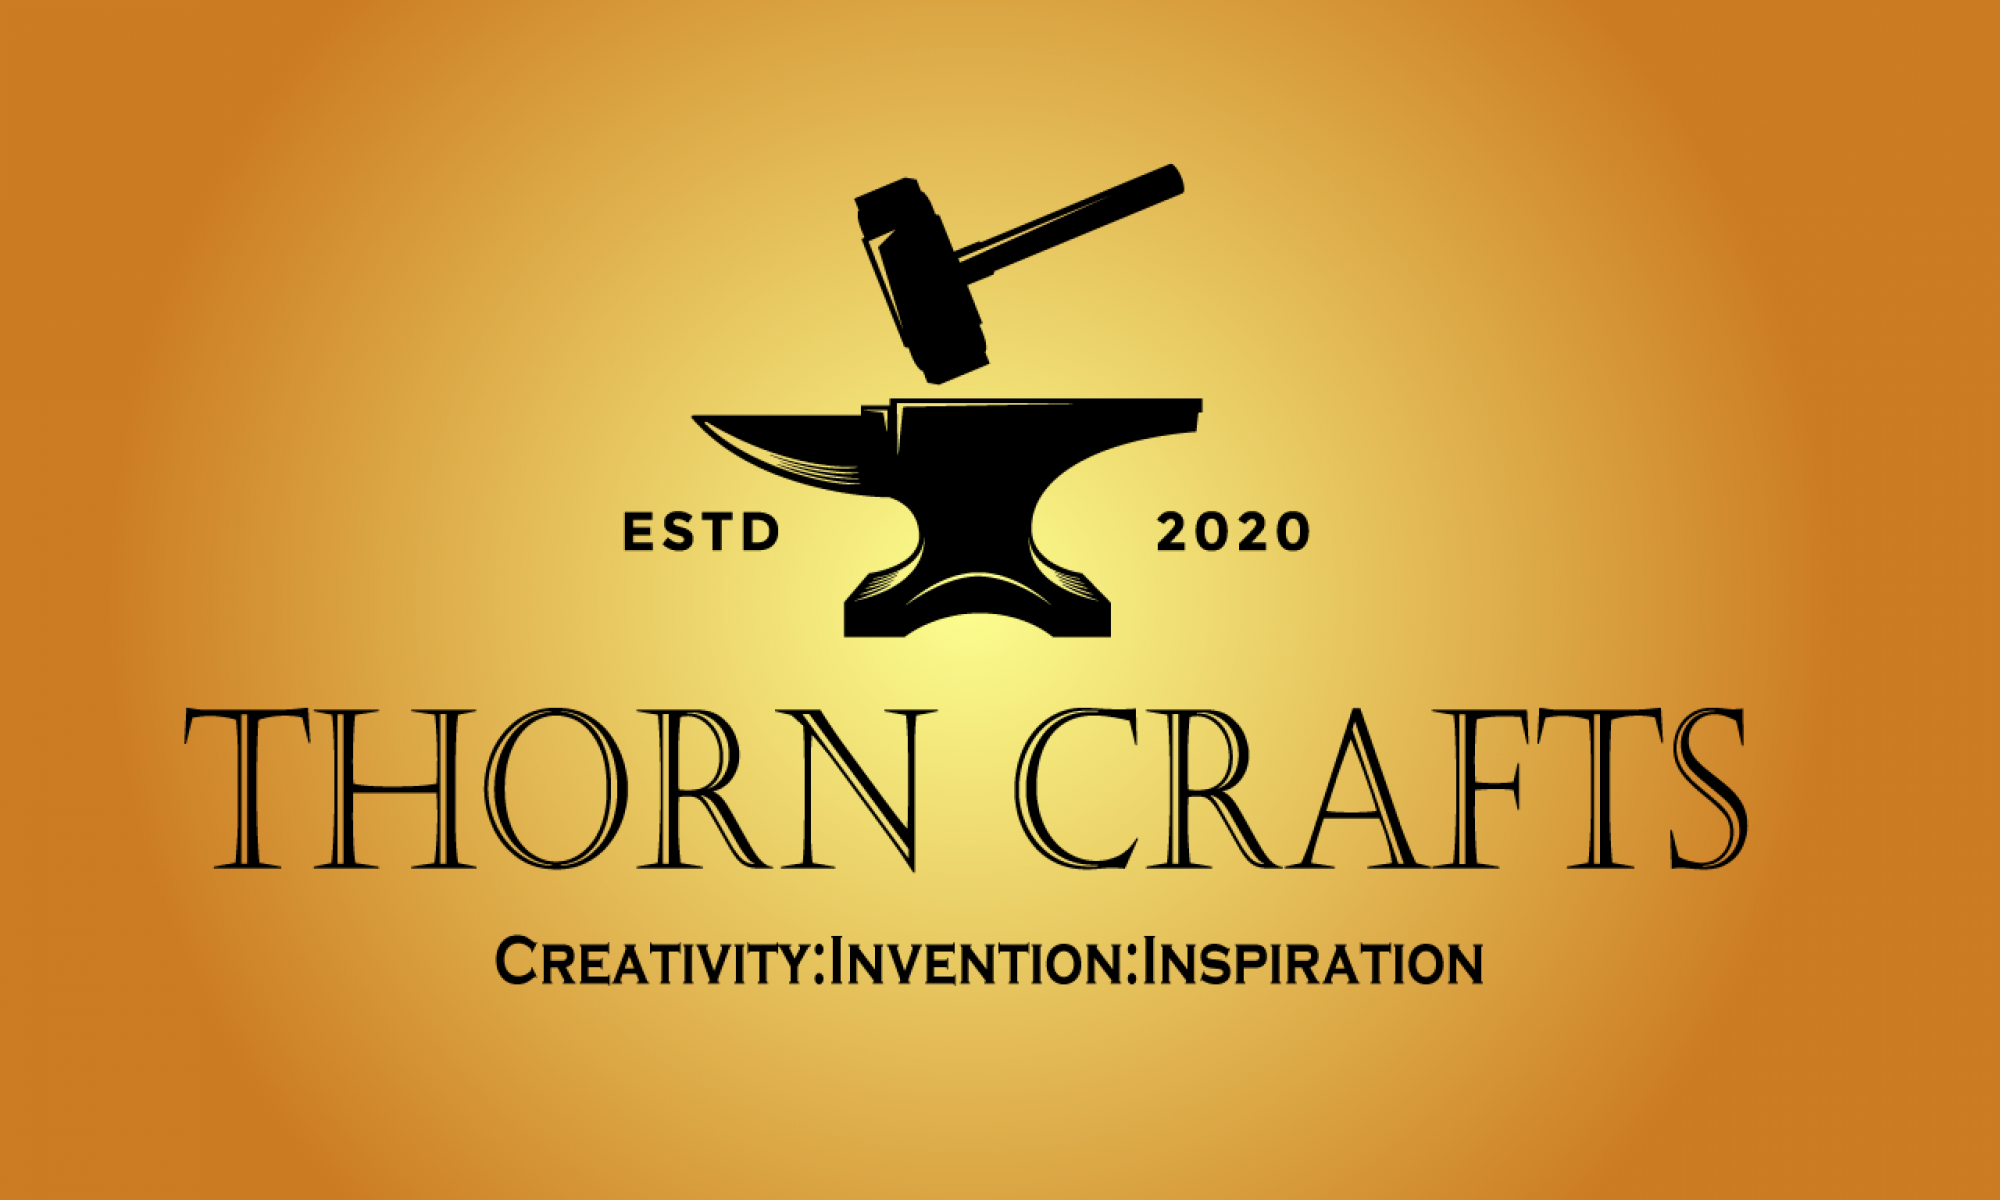 Thorn Crafts